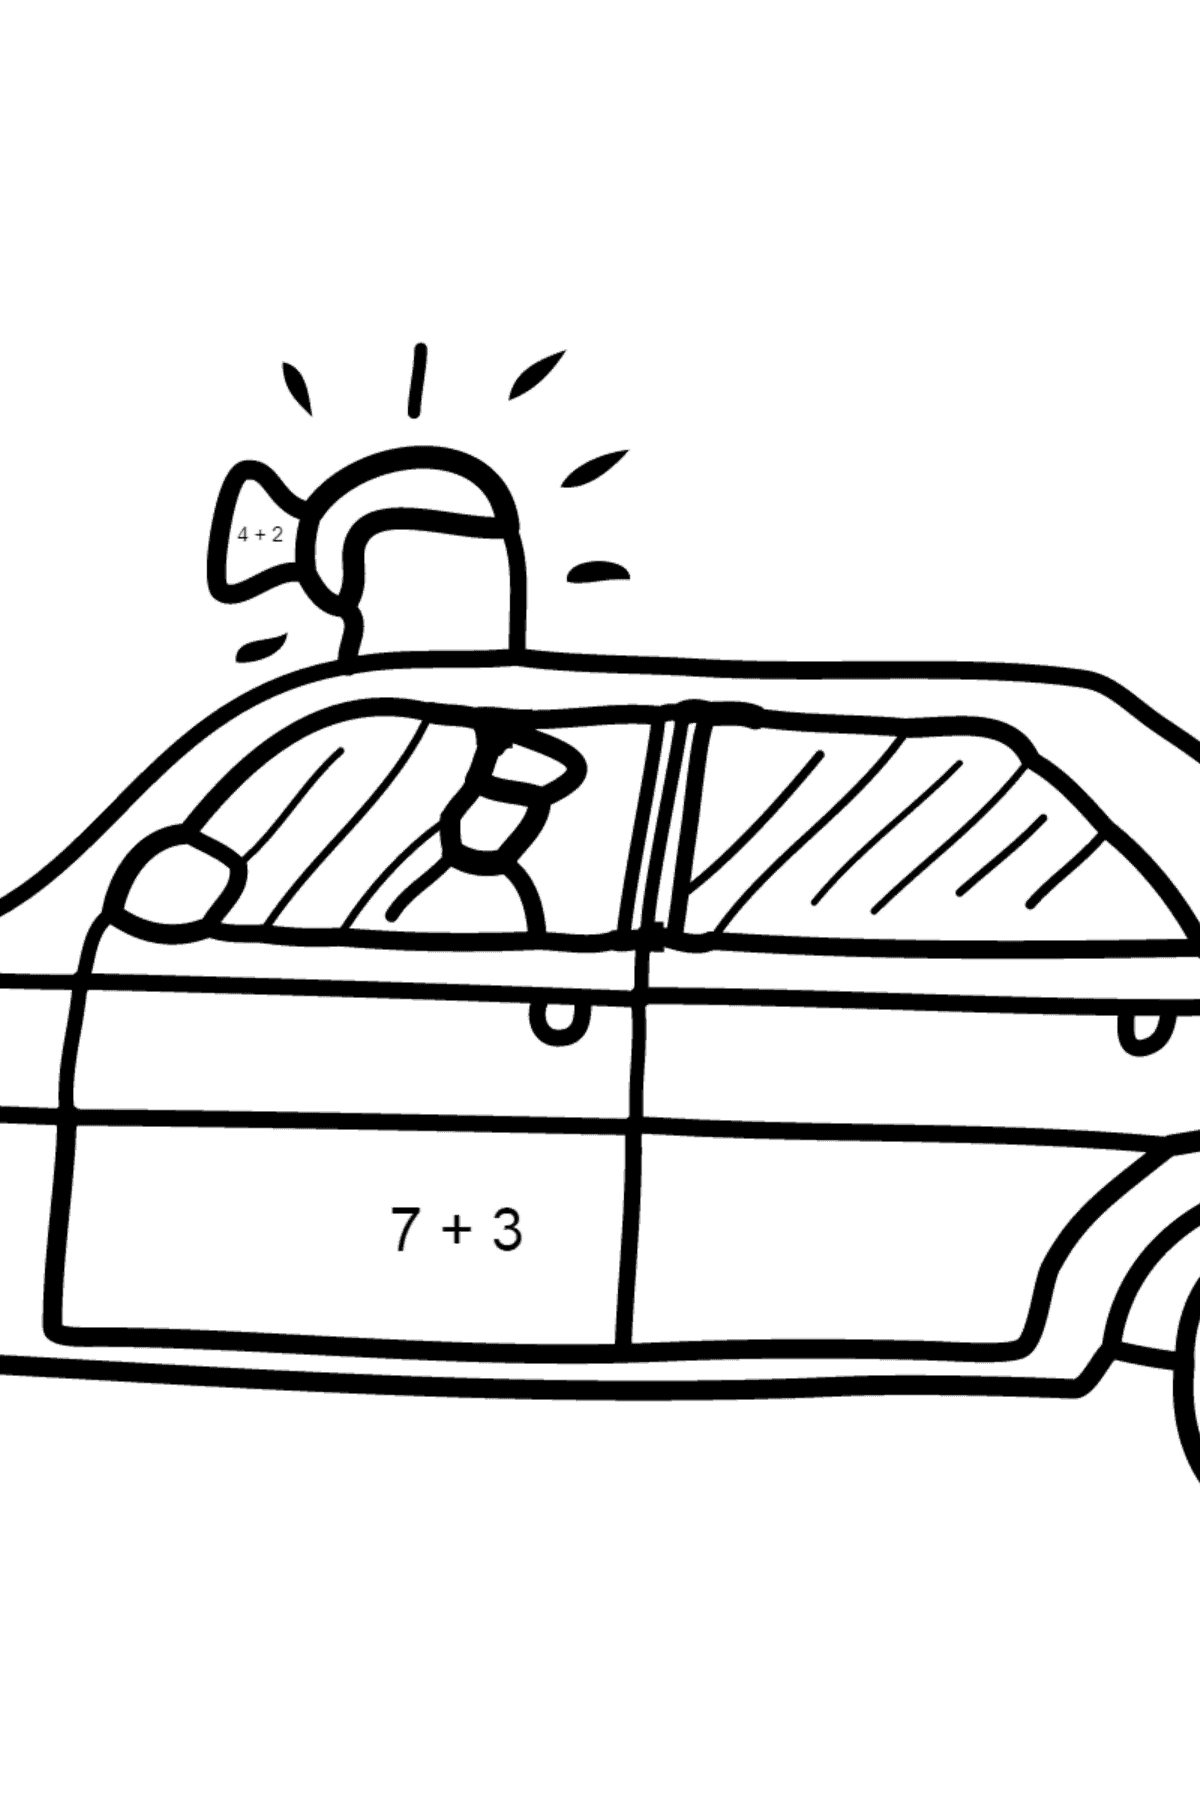 Coloring Page - A Police Car for Kids  - Color by Number Addition